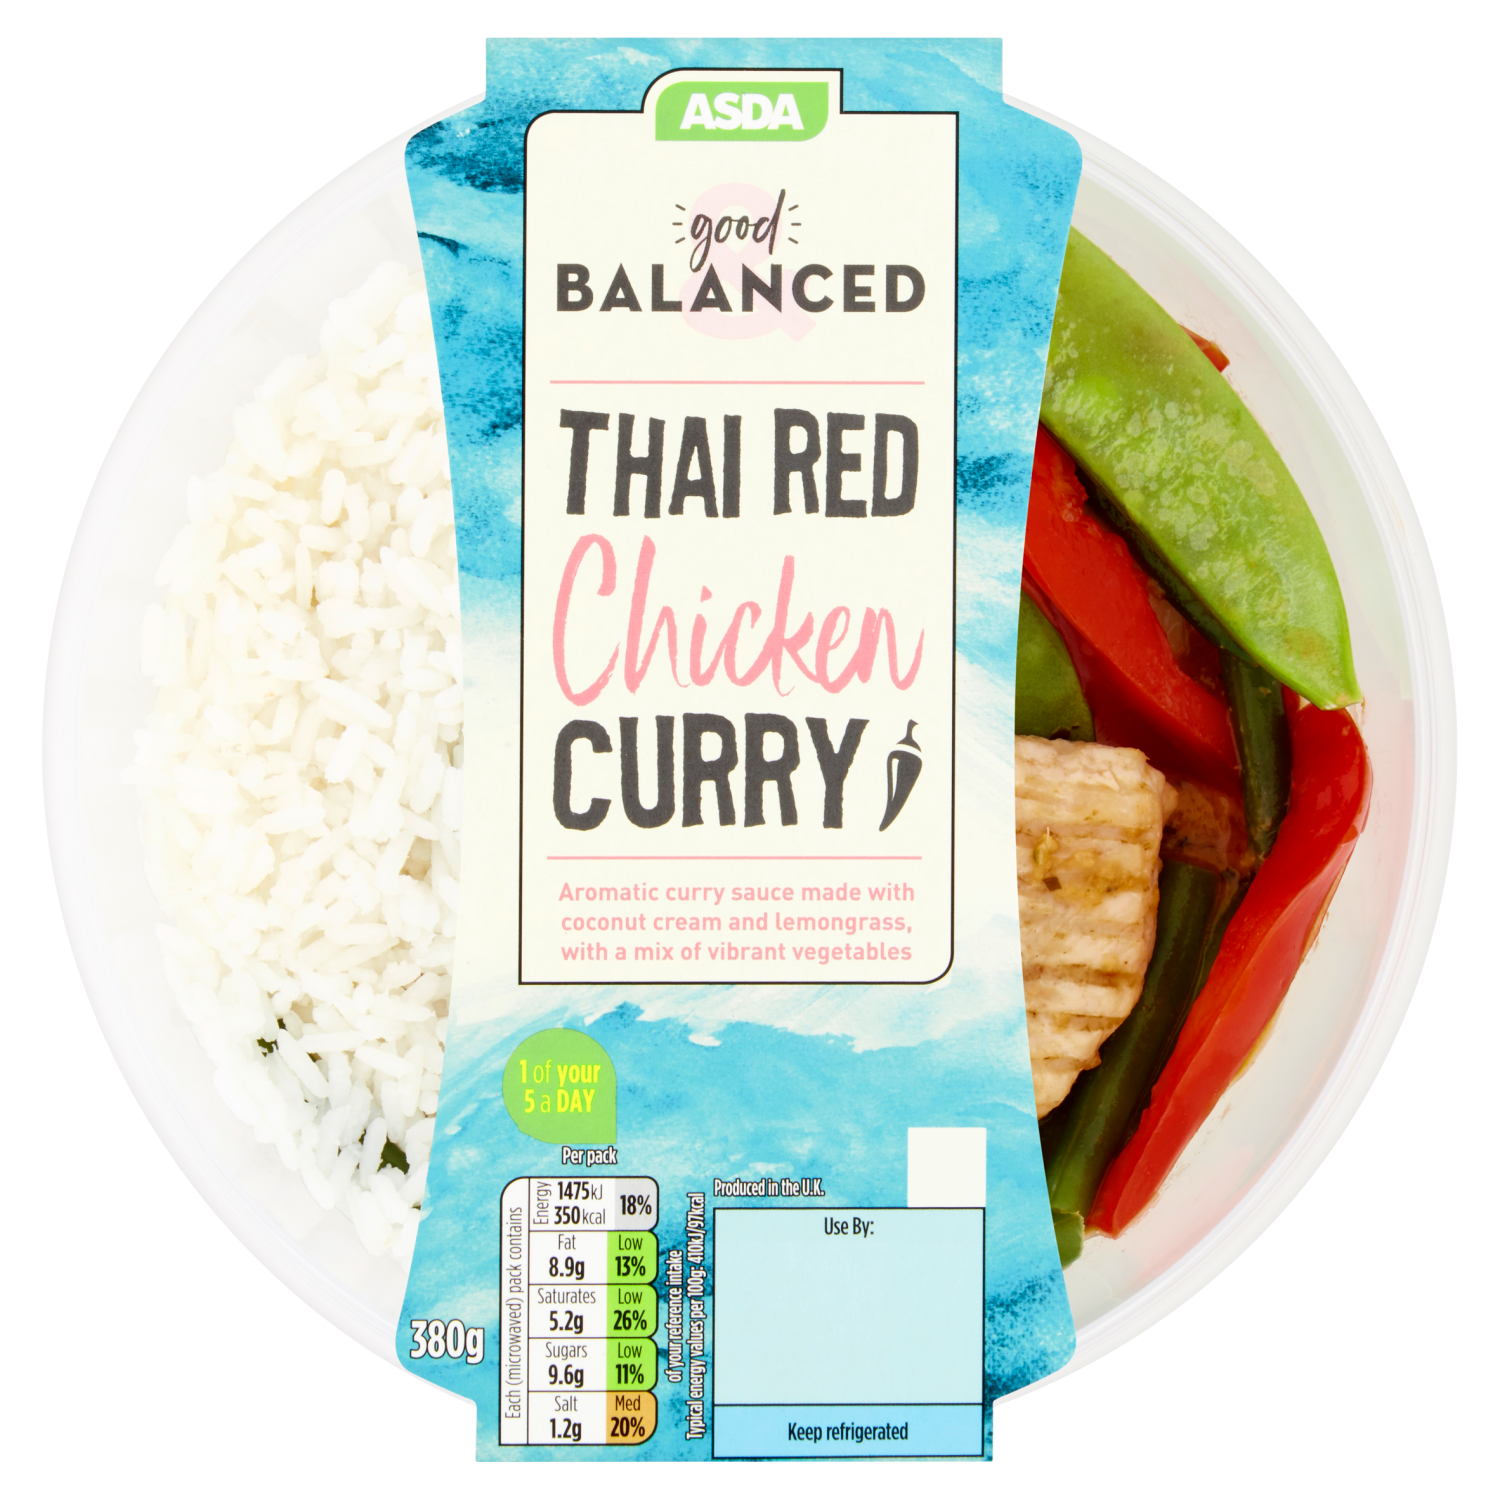 Asda ready meals: healthiest and low calorie options